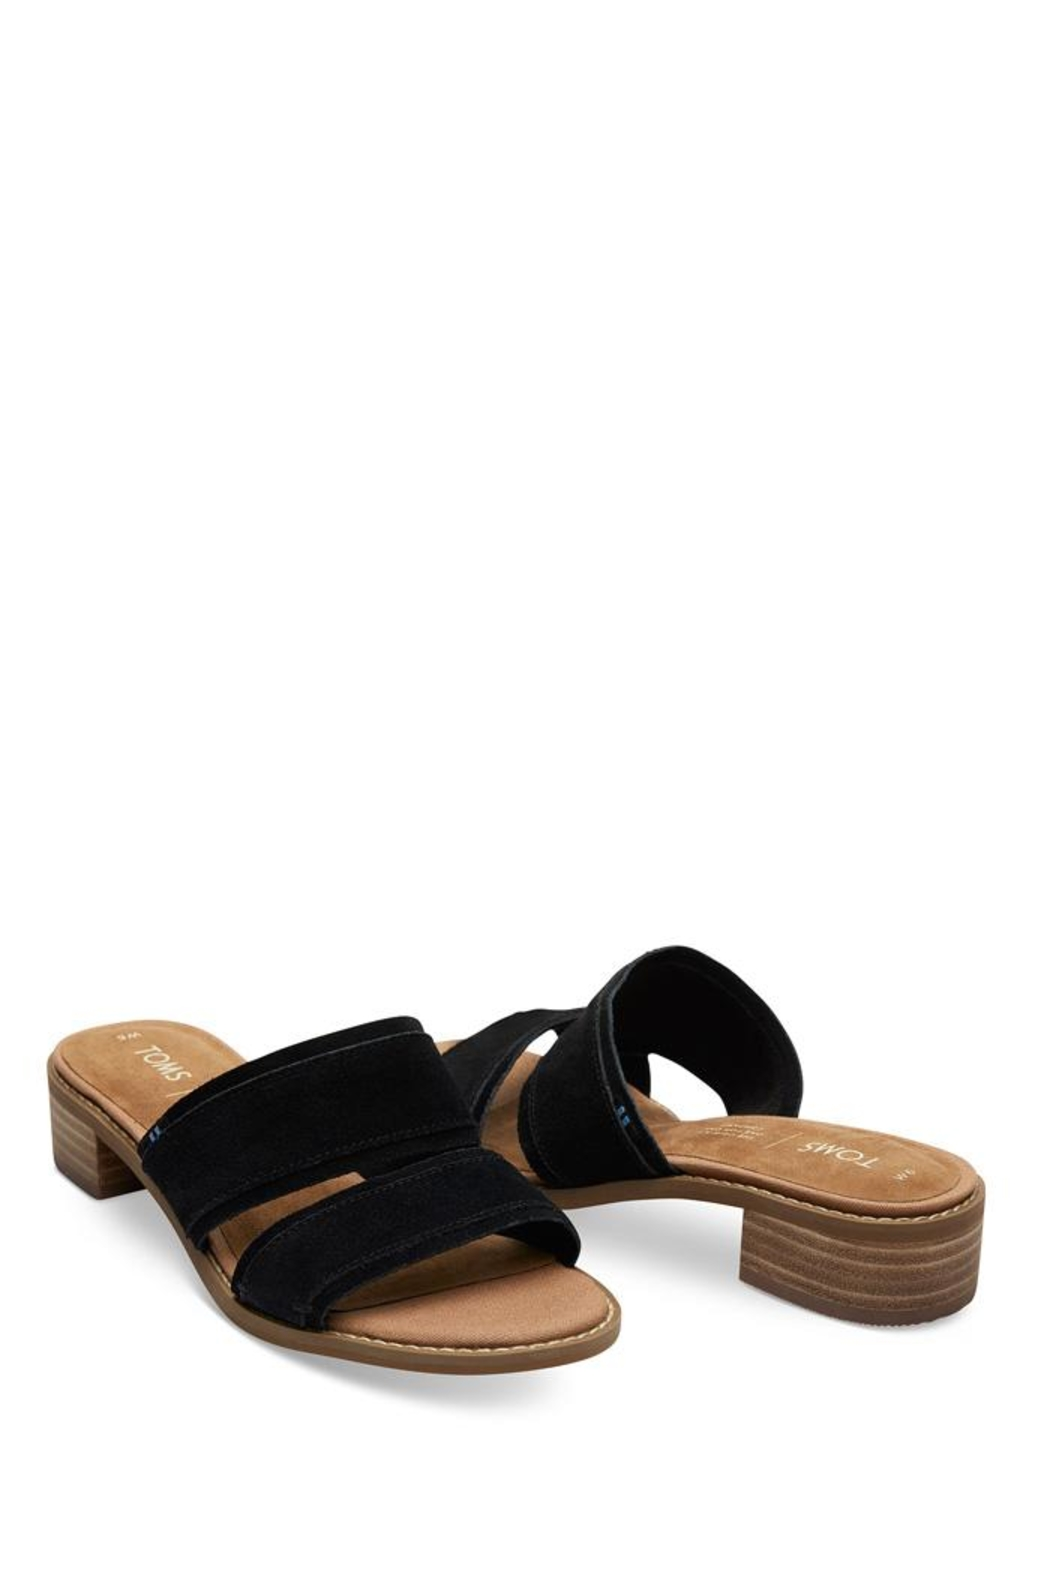 TOMS Mariposa Suede Sandals - Front Full Image